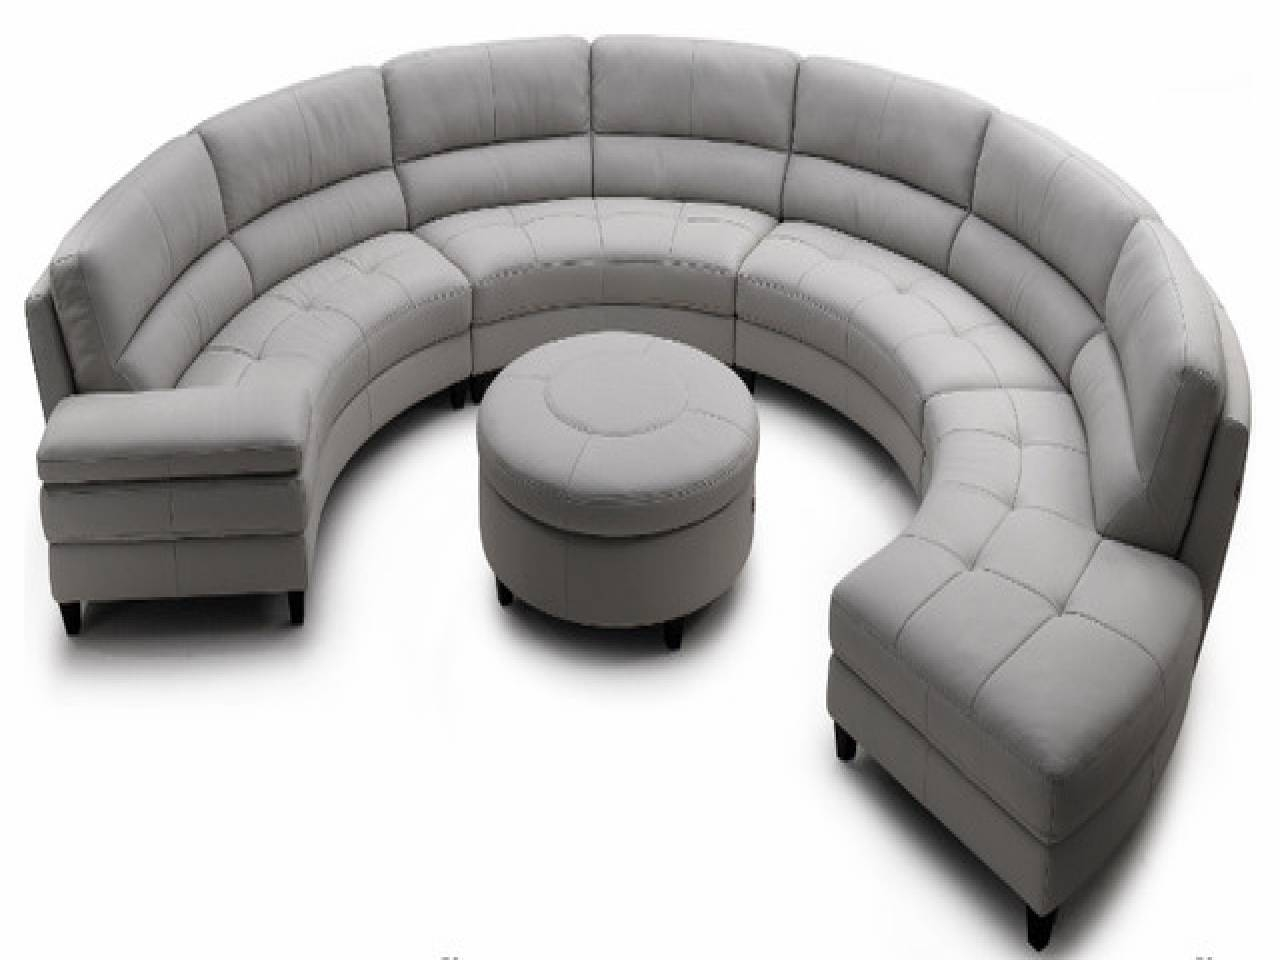 Sofas Center : Round Sectional Sofa Rare Photos Ideas Semi regarding Round Sofas (Image 23 of 30)